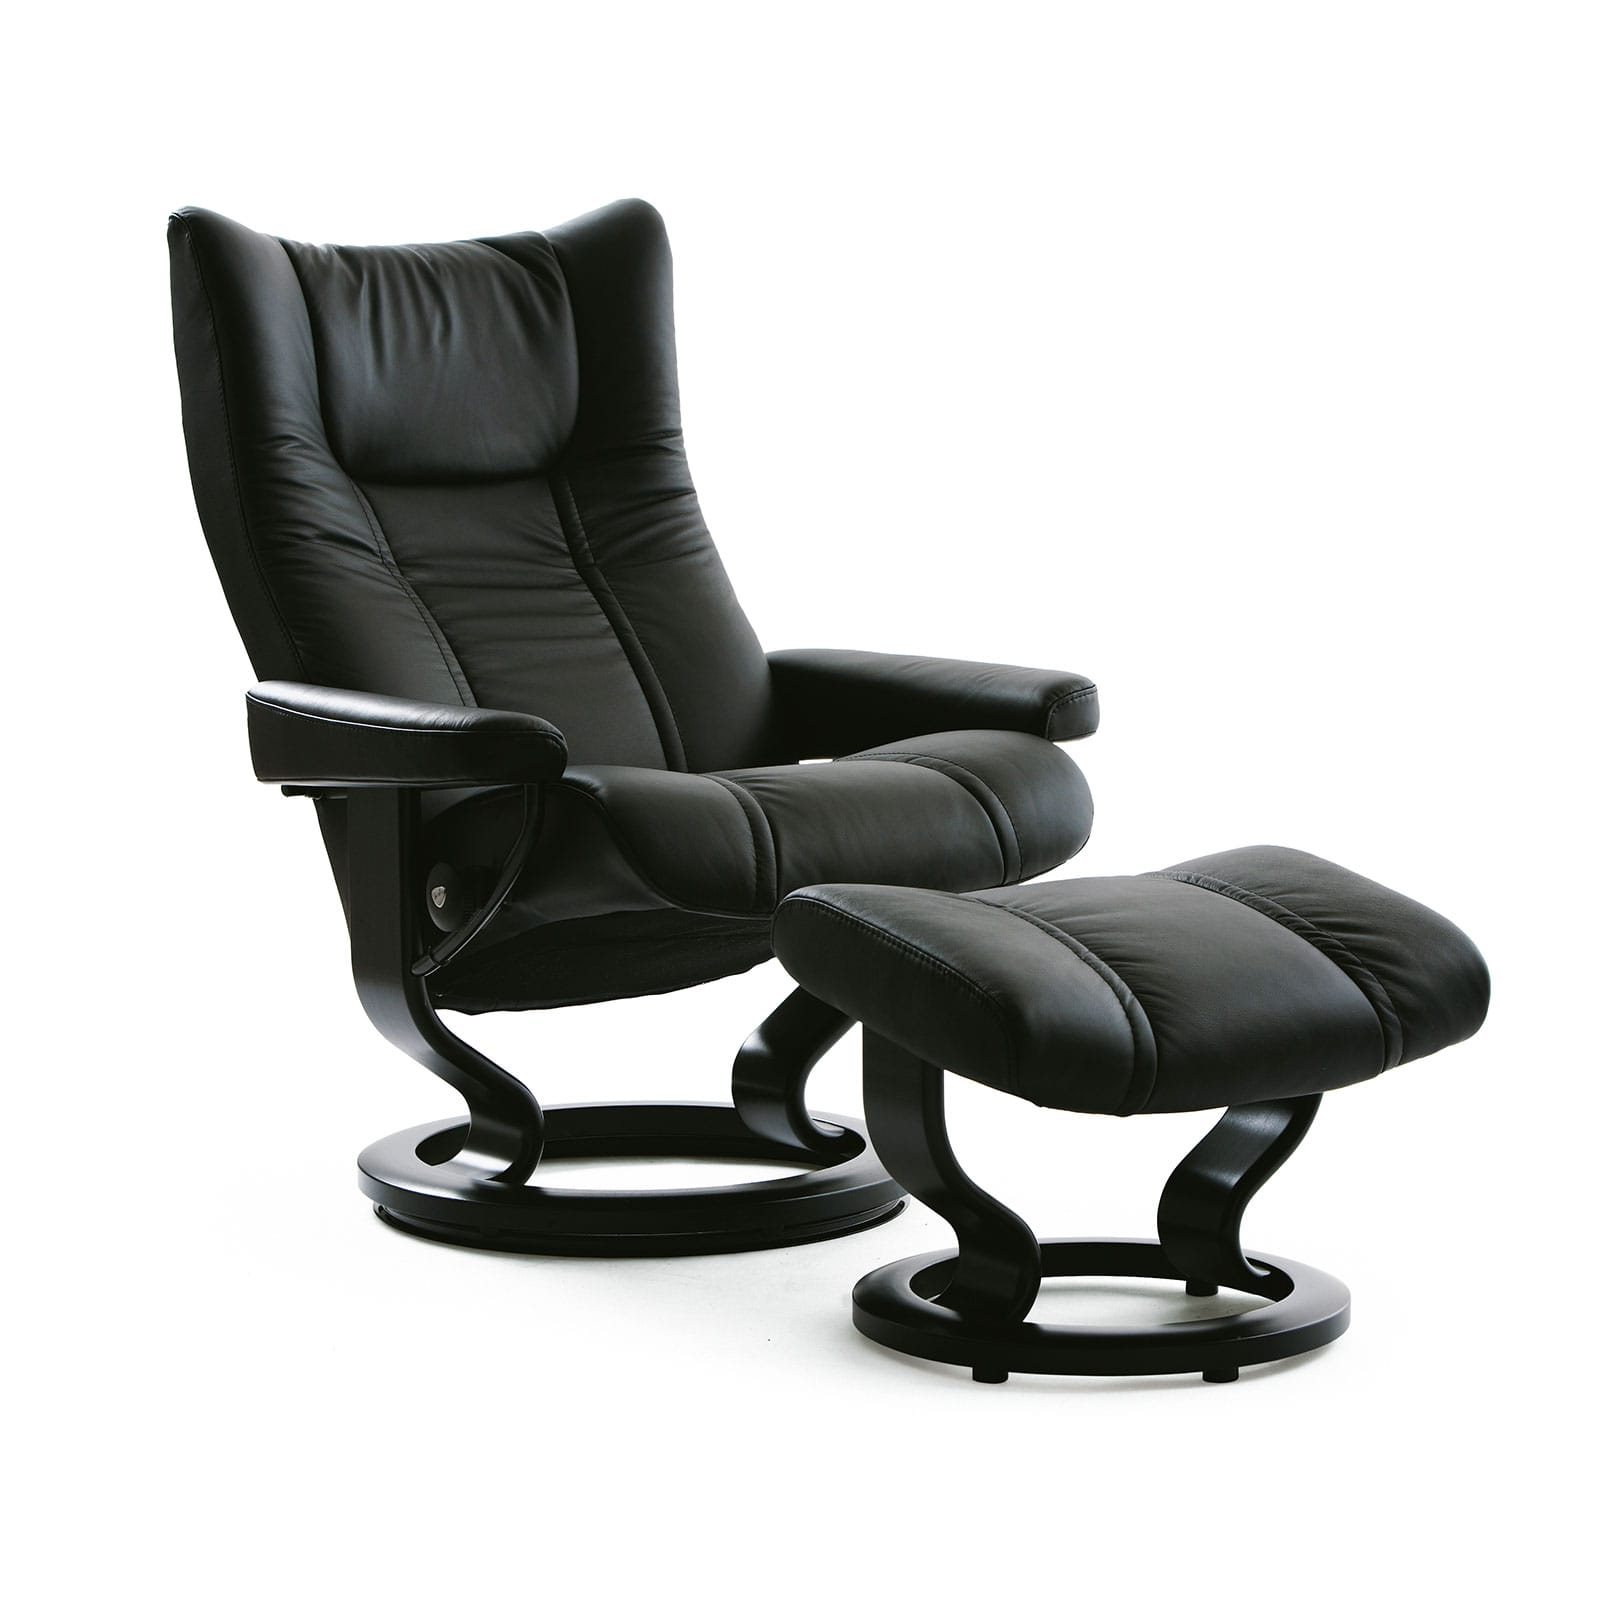 stressless sessel wing batick black mit hocker stressless. Black Bedroom Furniture Sets. Home Design Ideas